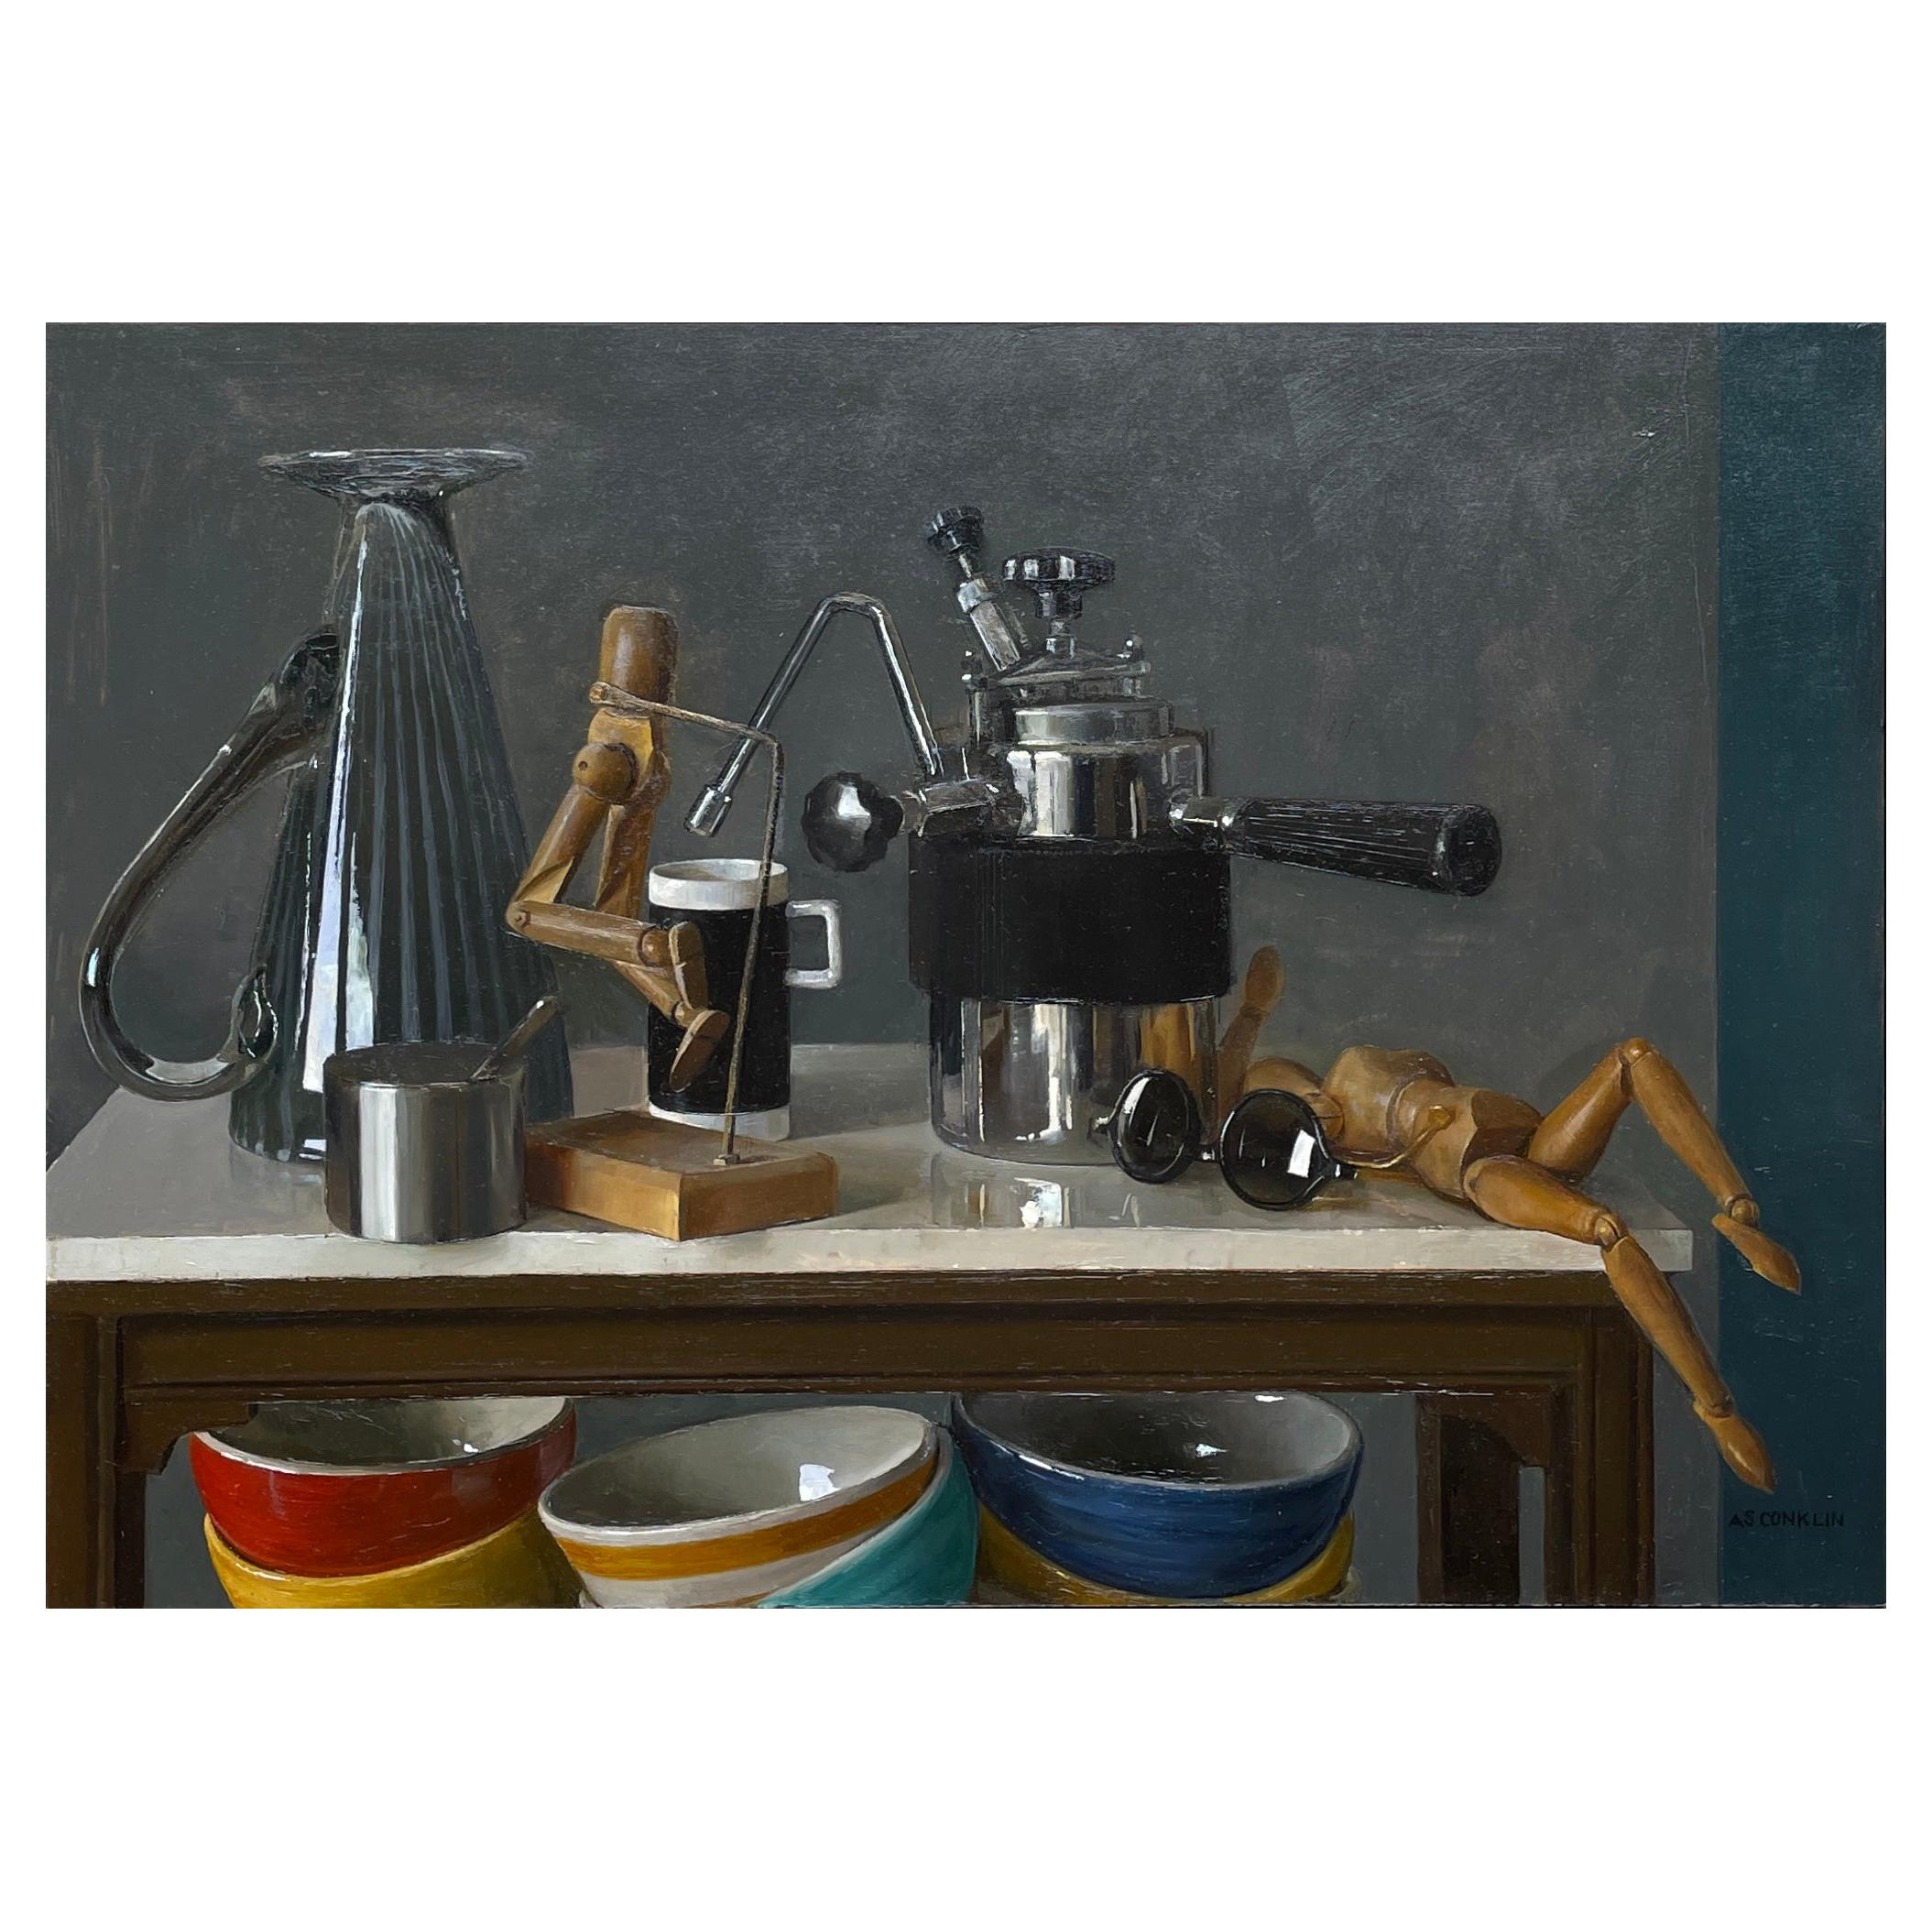 Still Life with Italian Coffee Maker, Lay Figures & Bowls, Original Oil Painting